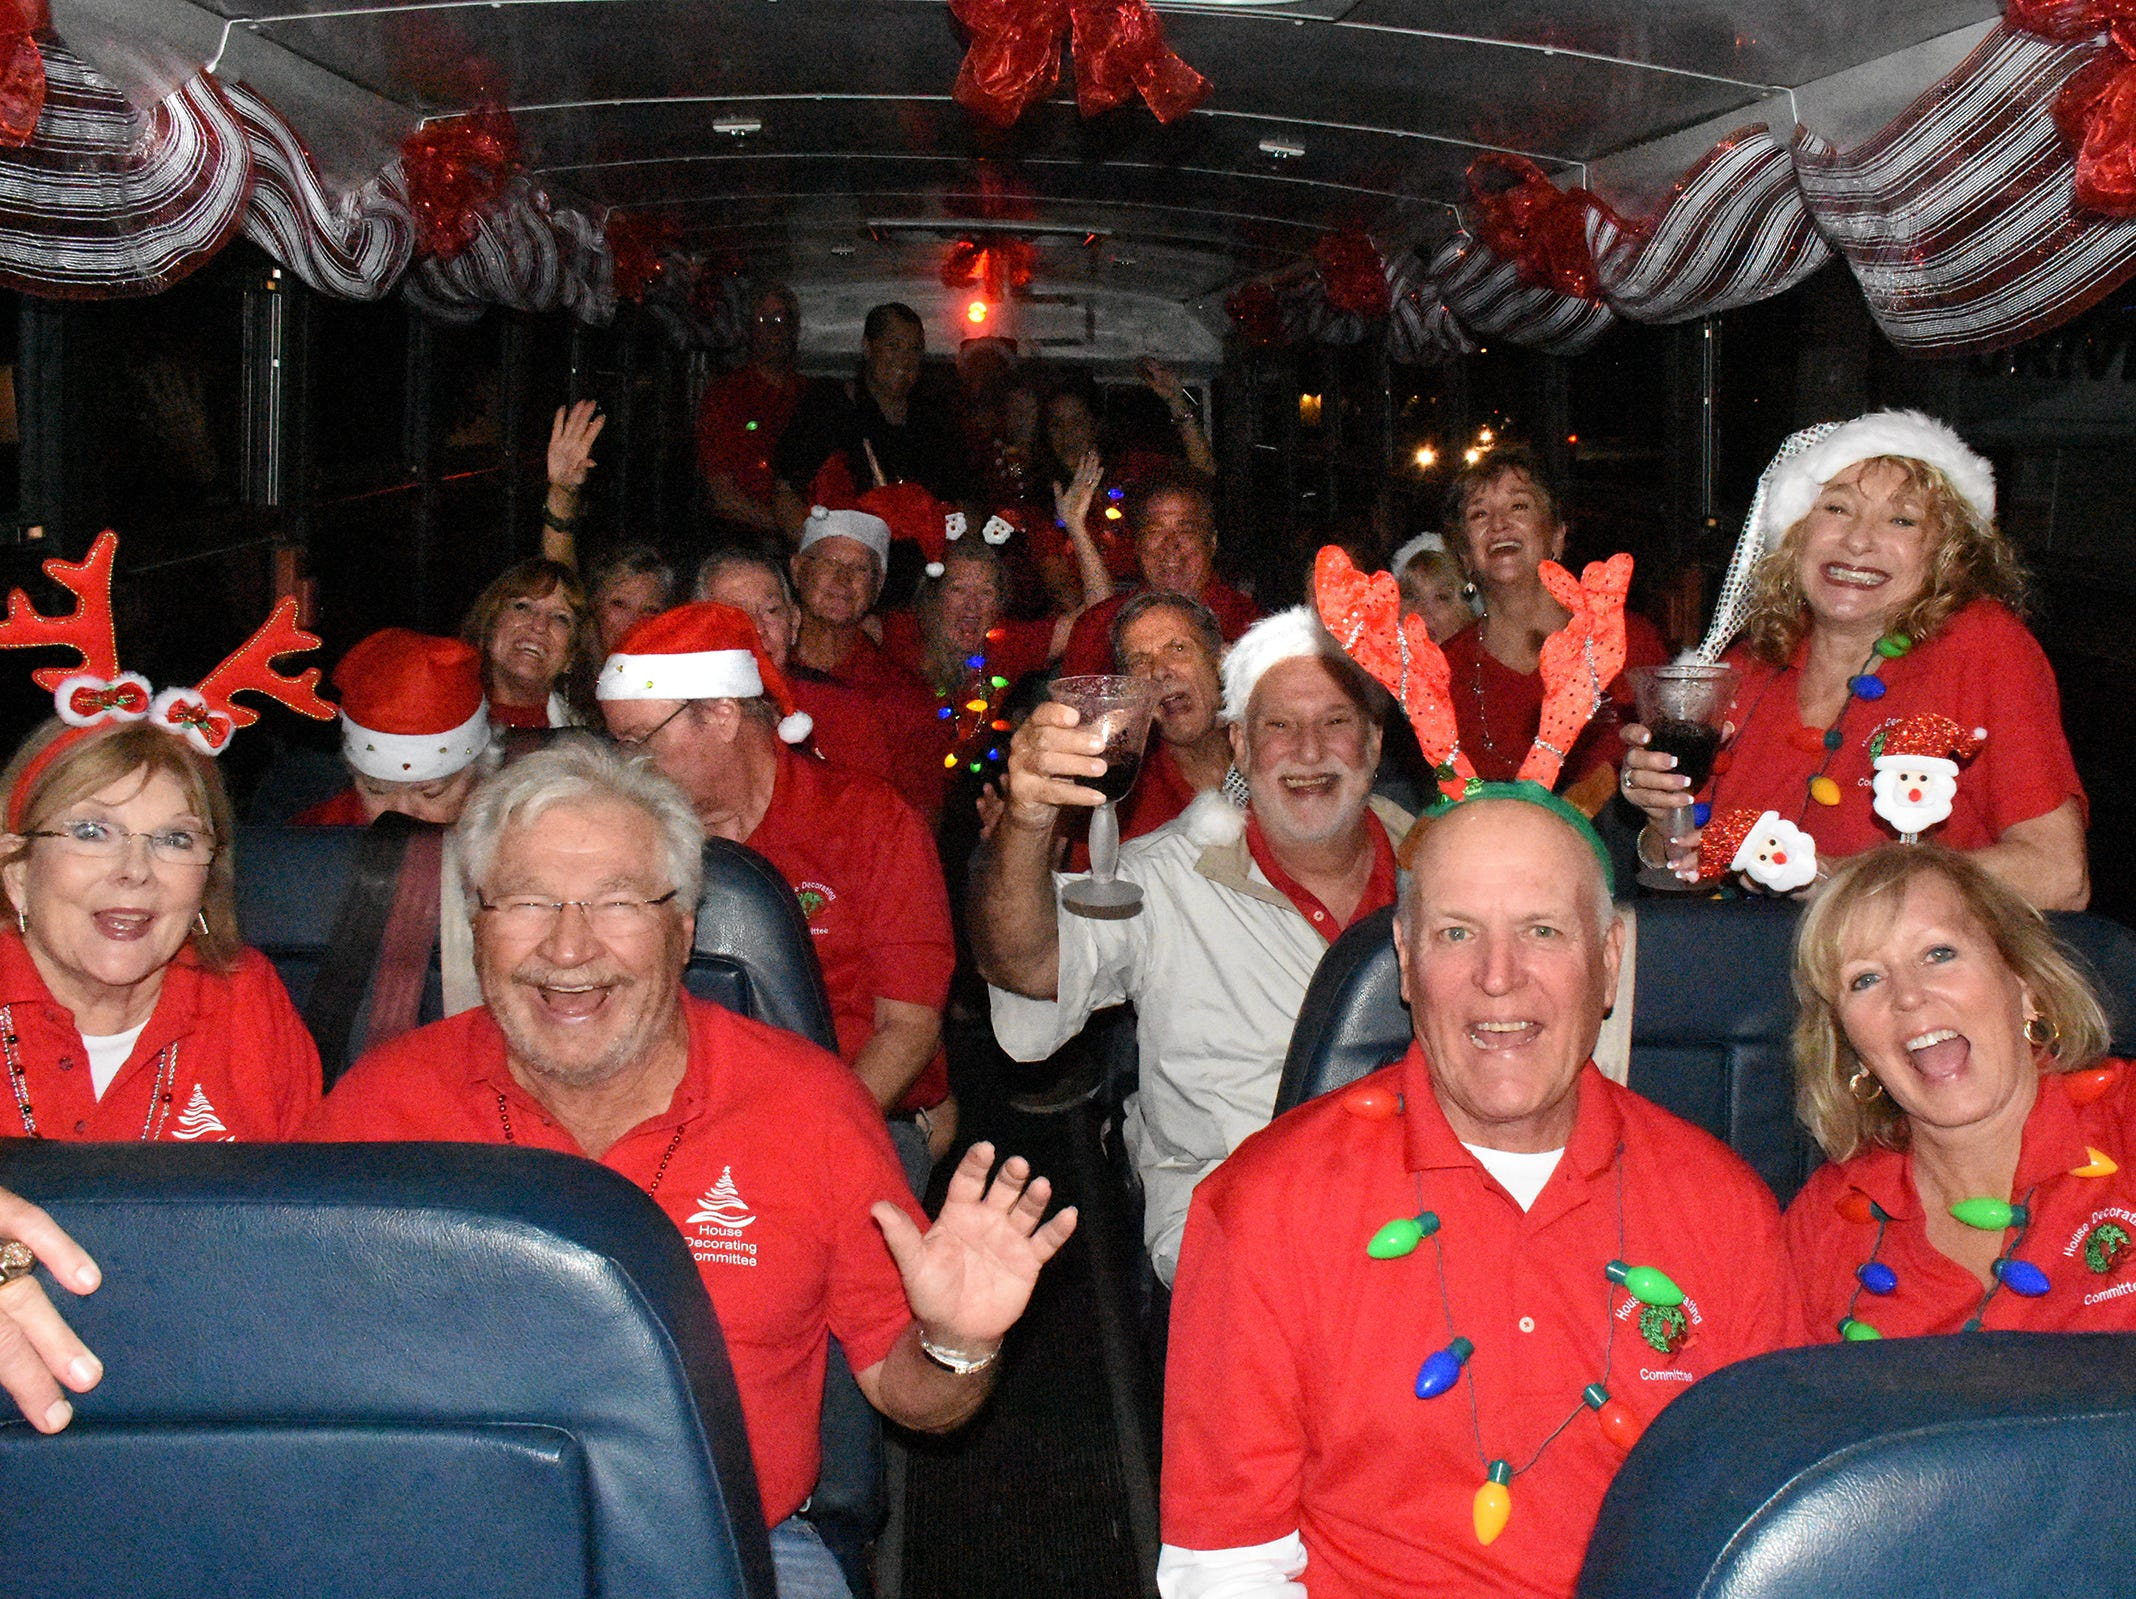 The judges set out on the bus. The winners of the annual Christmas Home Decorating Contest were honored Friday night, as the judges made the rounds of the finalists and picked an overall winner.